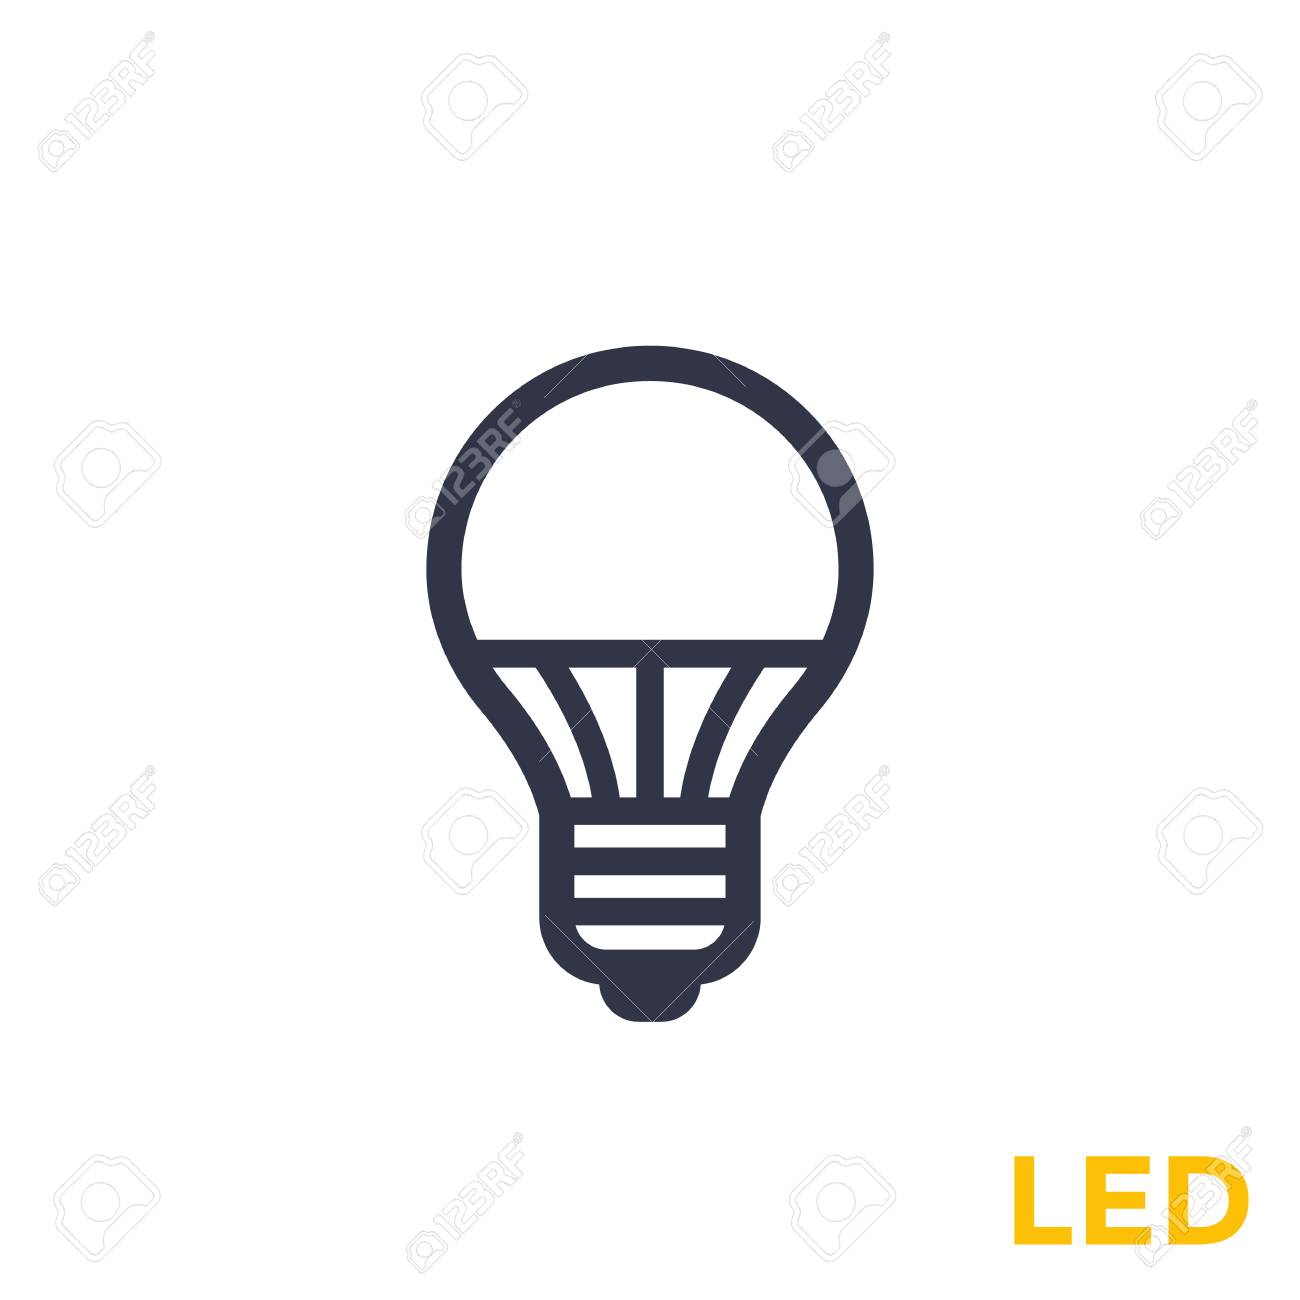 icon led light bulb on white bfg7y6Yv